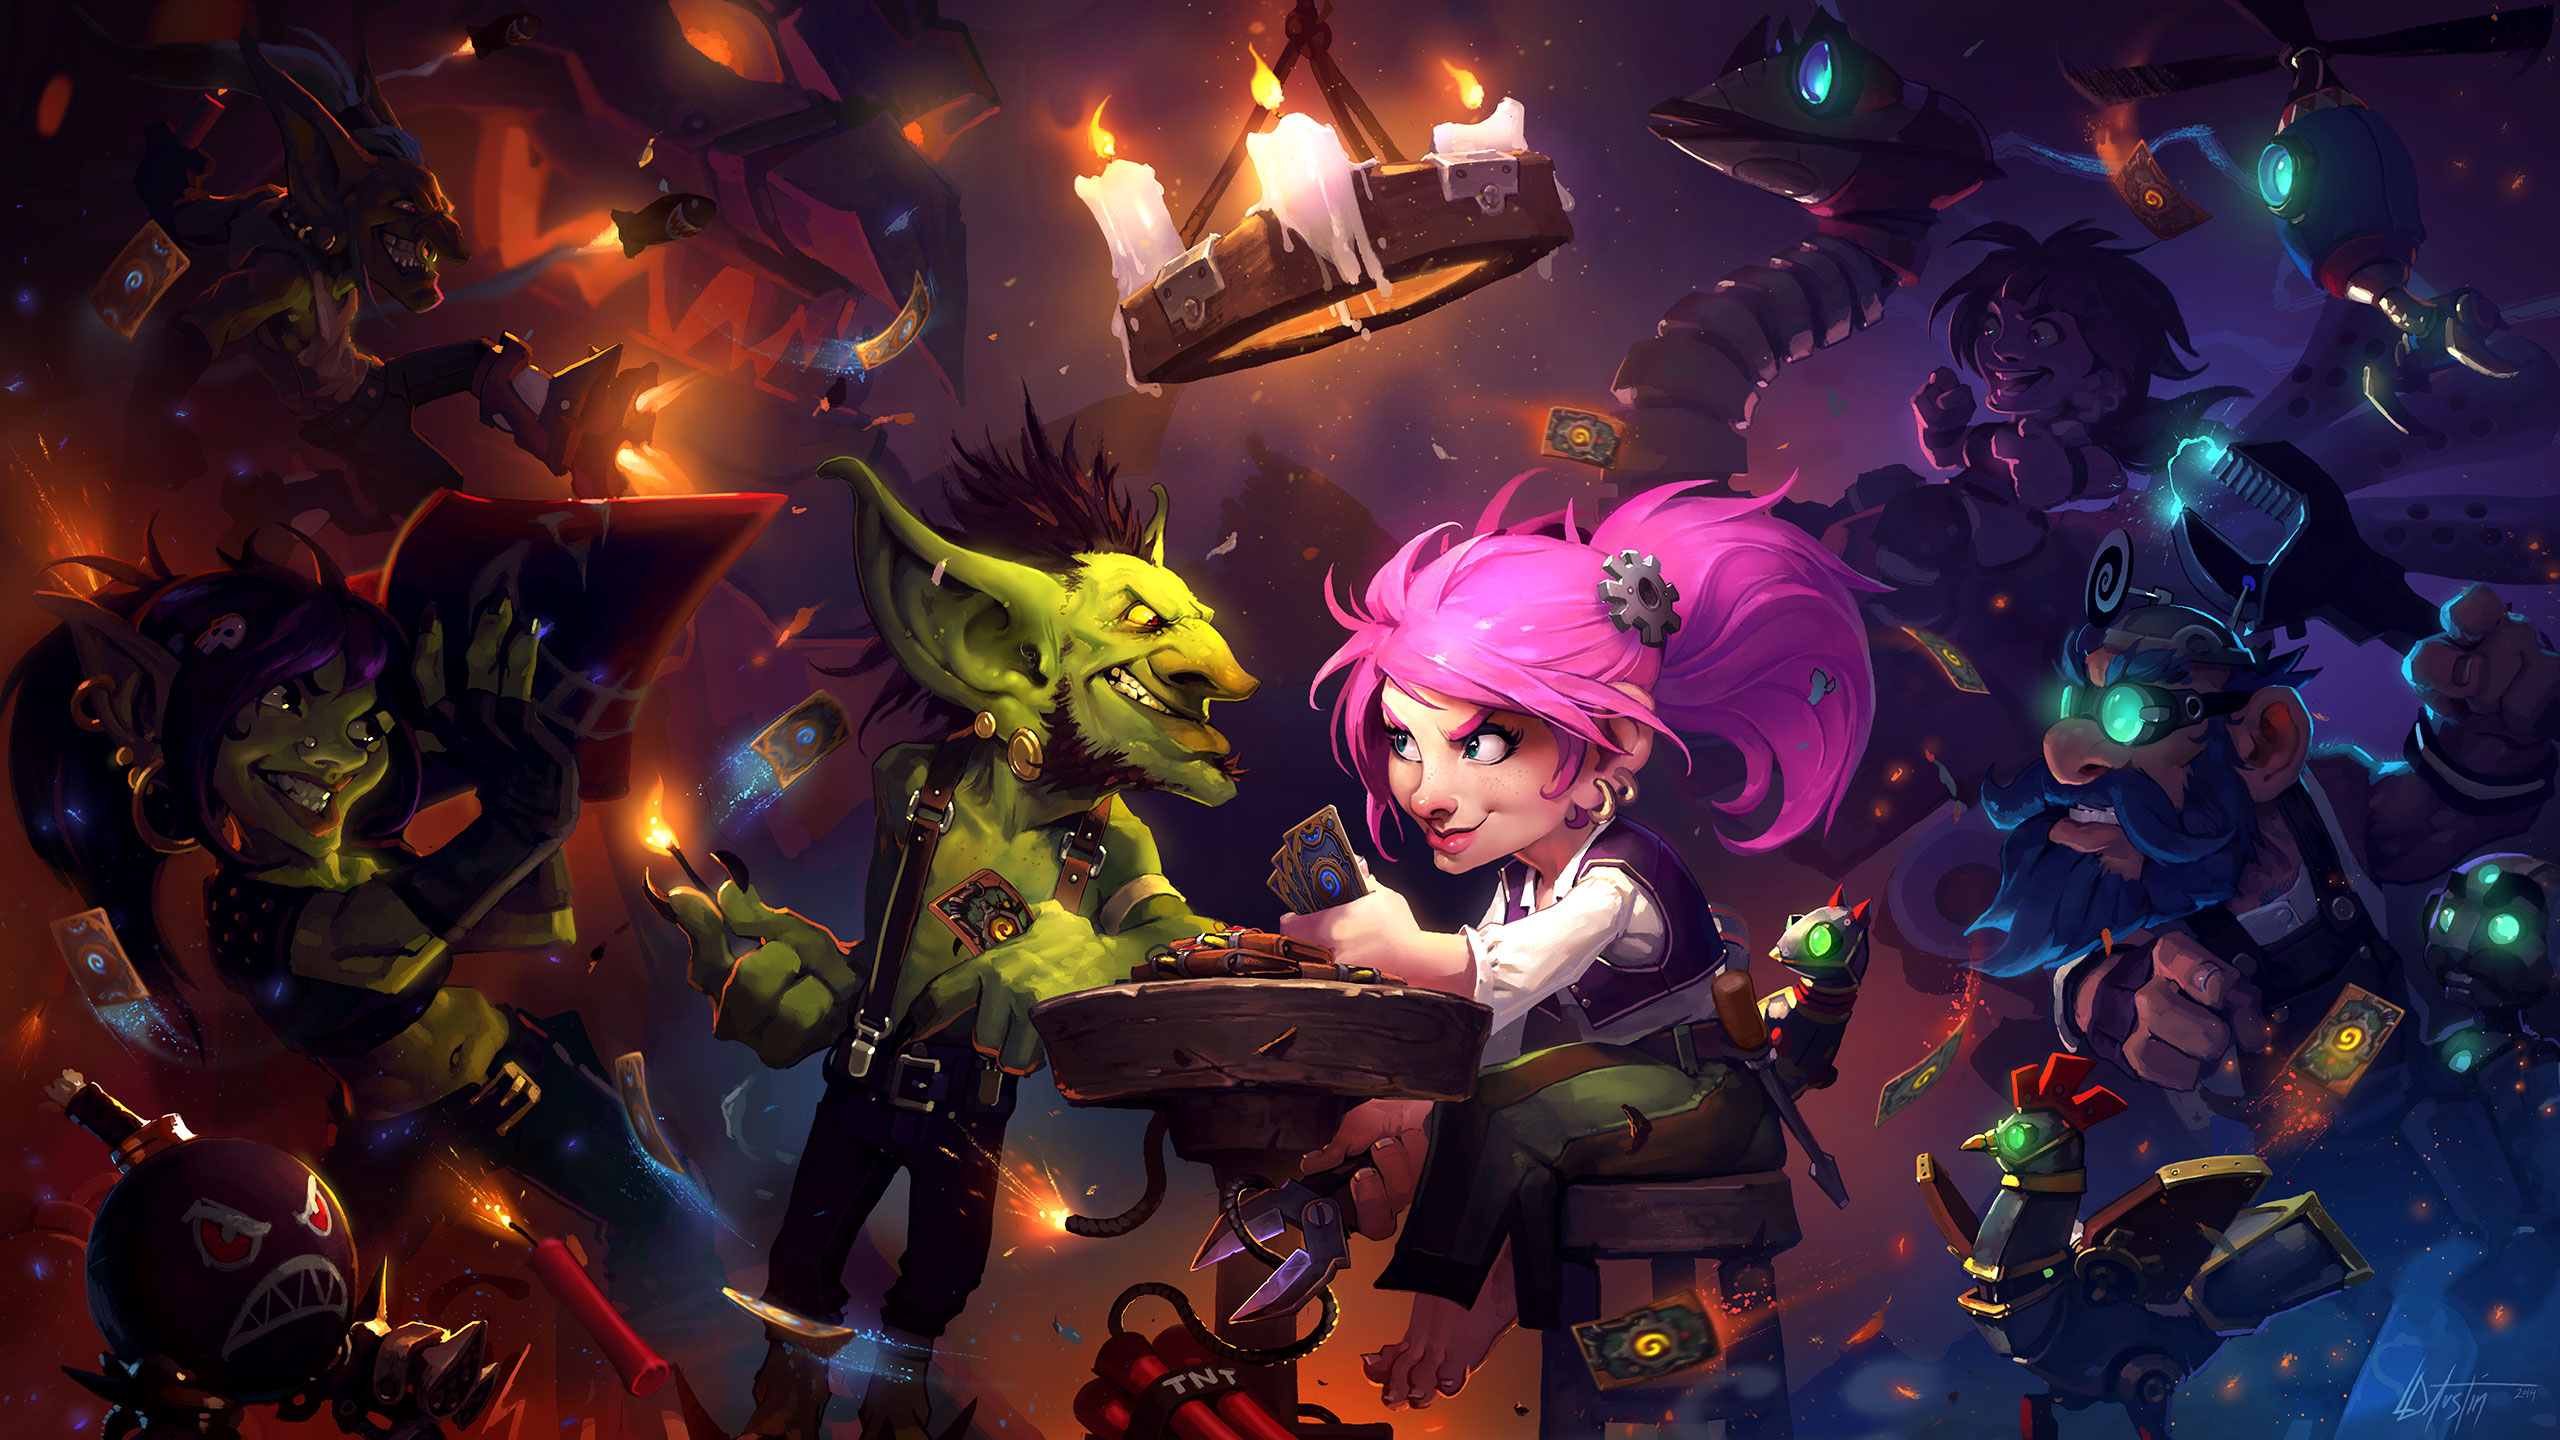 Hearthstone: Heroes Of Warcraft Backgrounds, Compatible - PC, Mobile, Gadgets| 2560x1440 px